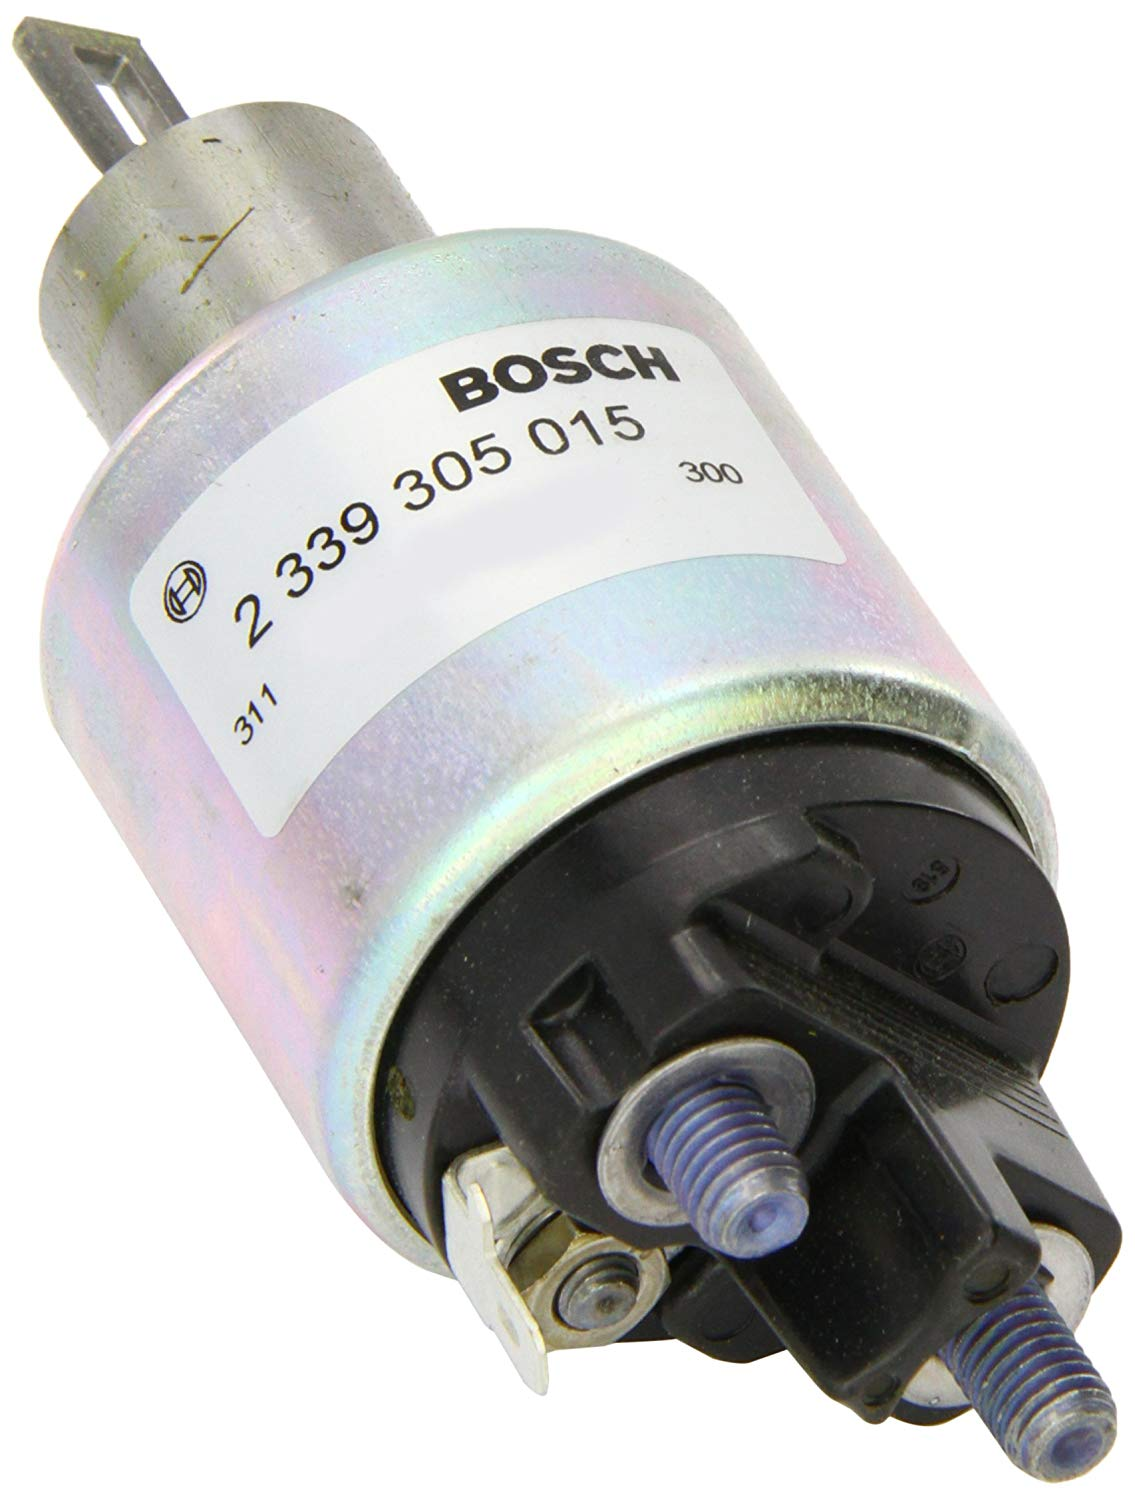 Bosch Starter solenoide Switch 2339305015